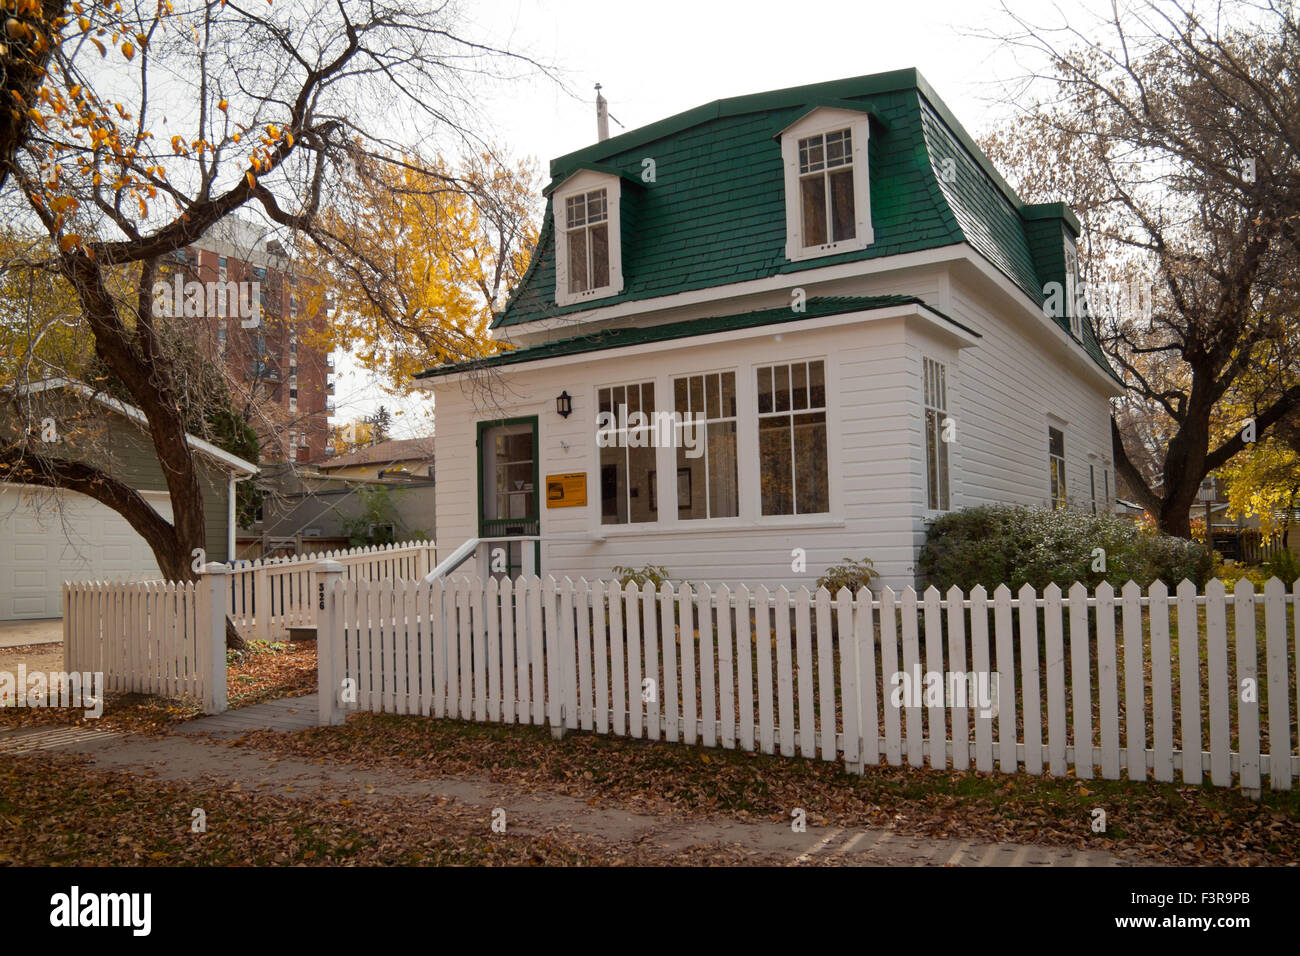 A view of the Marr Residence and Marr Garden, a historic site in Saskatoon, Saskatchewan, Canada. - Stock Image